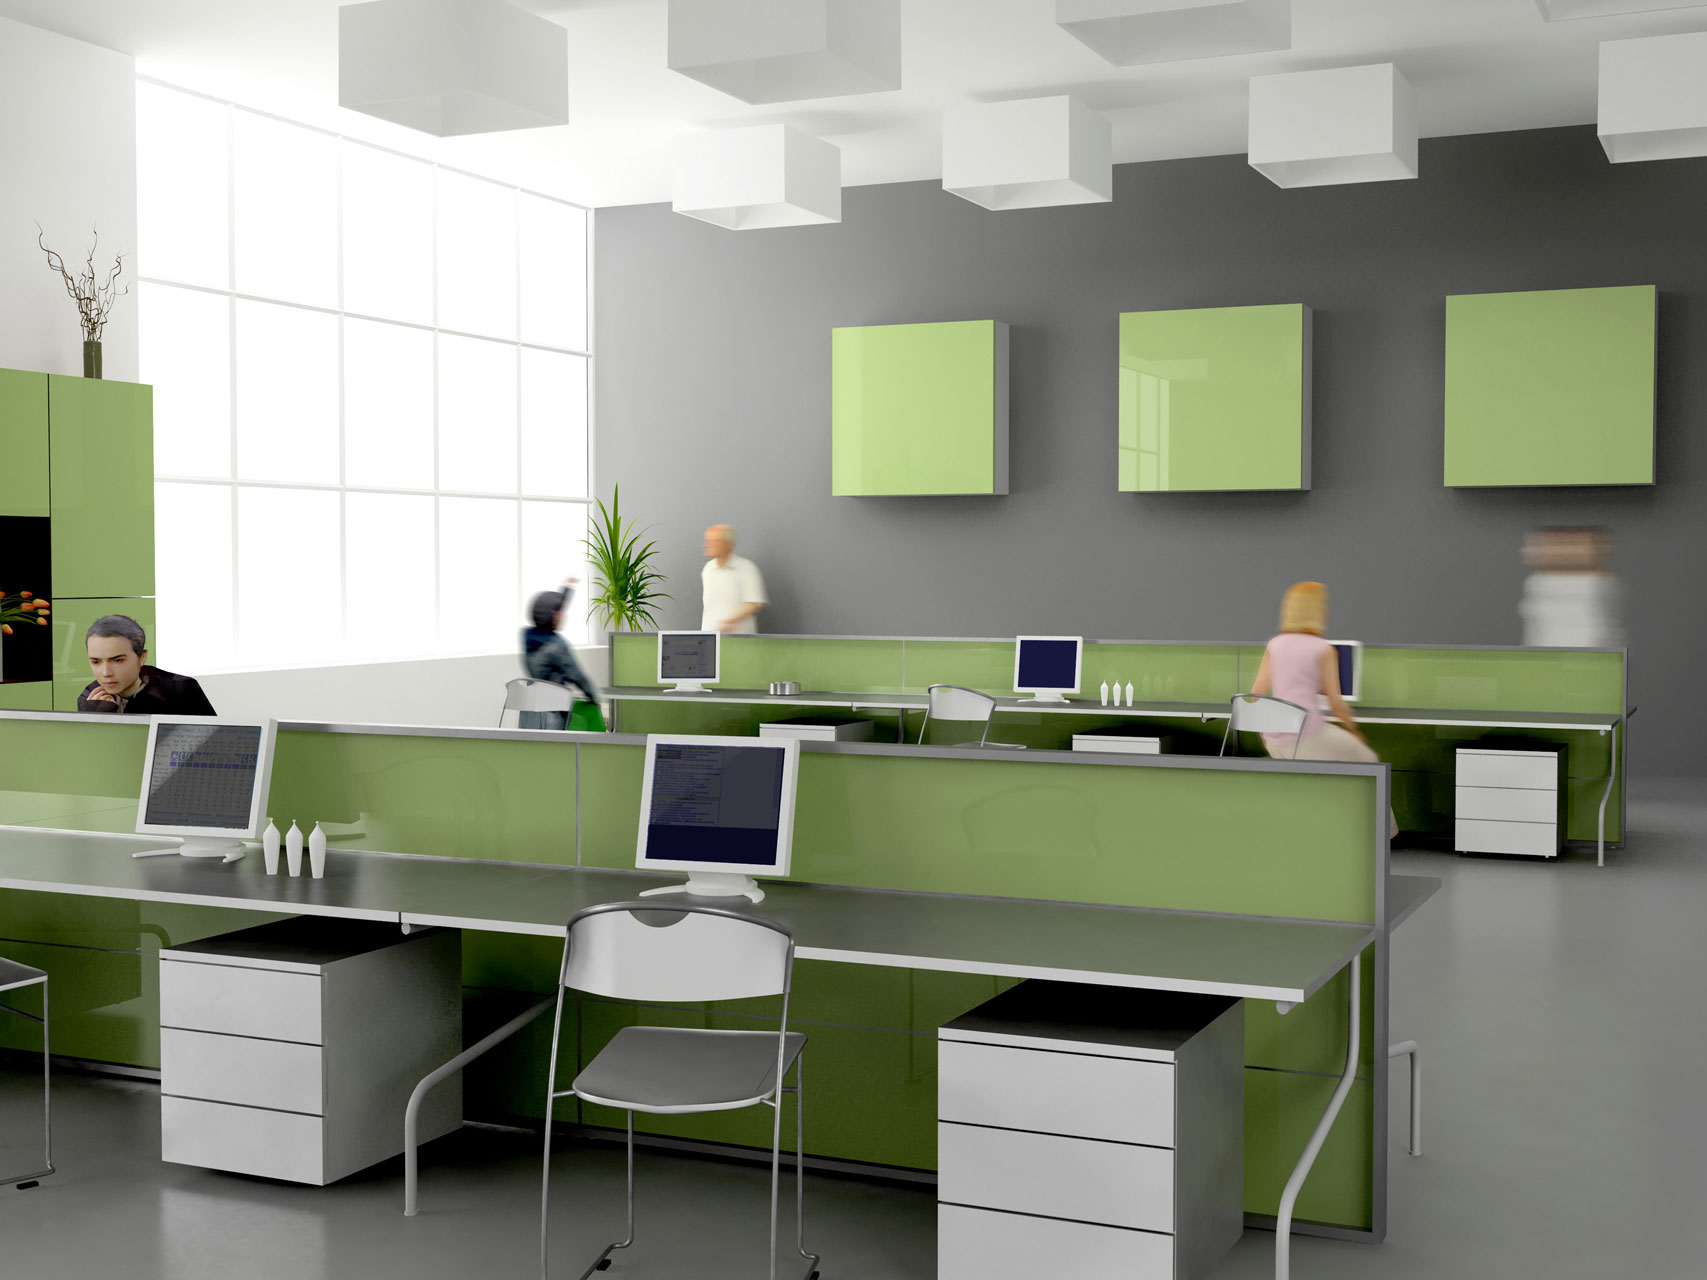 4 latest commercial interior designing trends to follow by alacritys ...